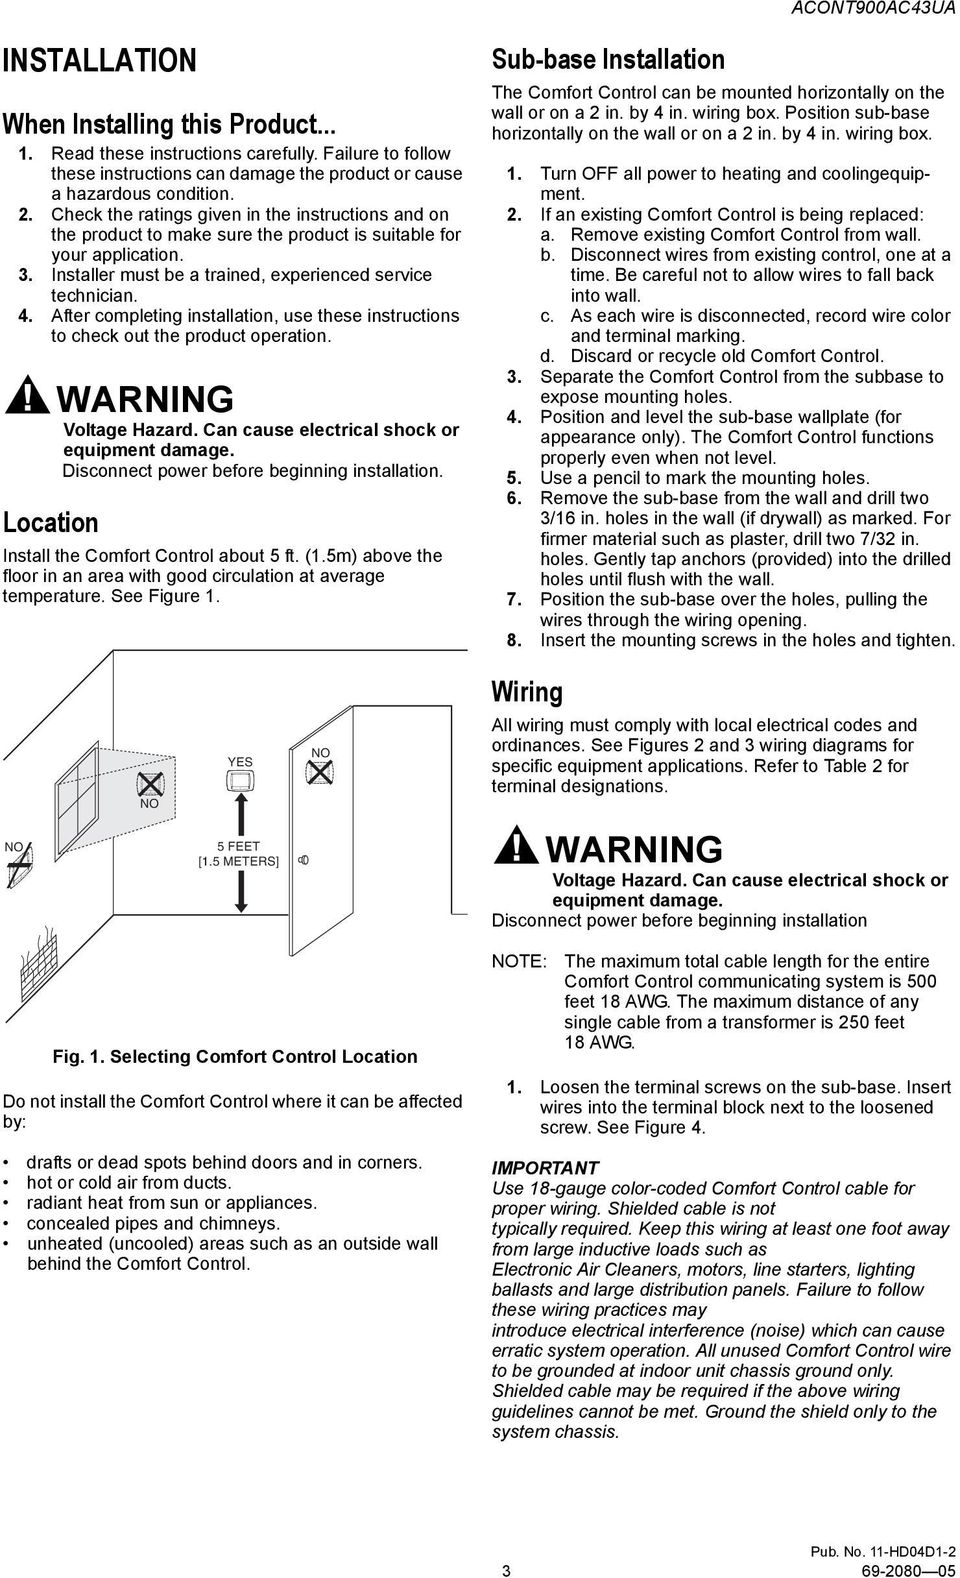 Comfort Control 4 Heat Gas Oil Or Electric 3 Cool Pump Furnace Wiring Diagram After Completing Installation Use These Instructions To Check Out The Product Operation Location Warning